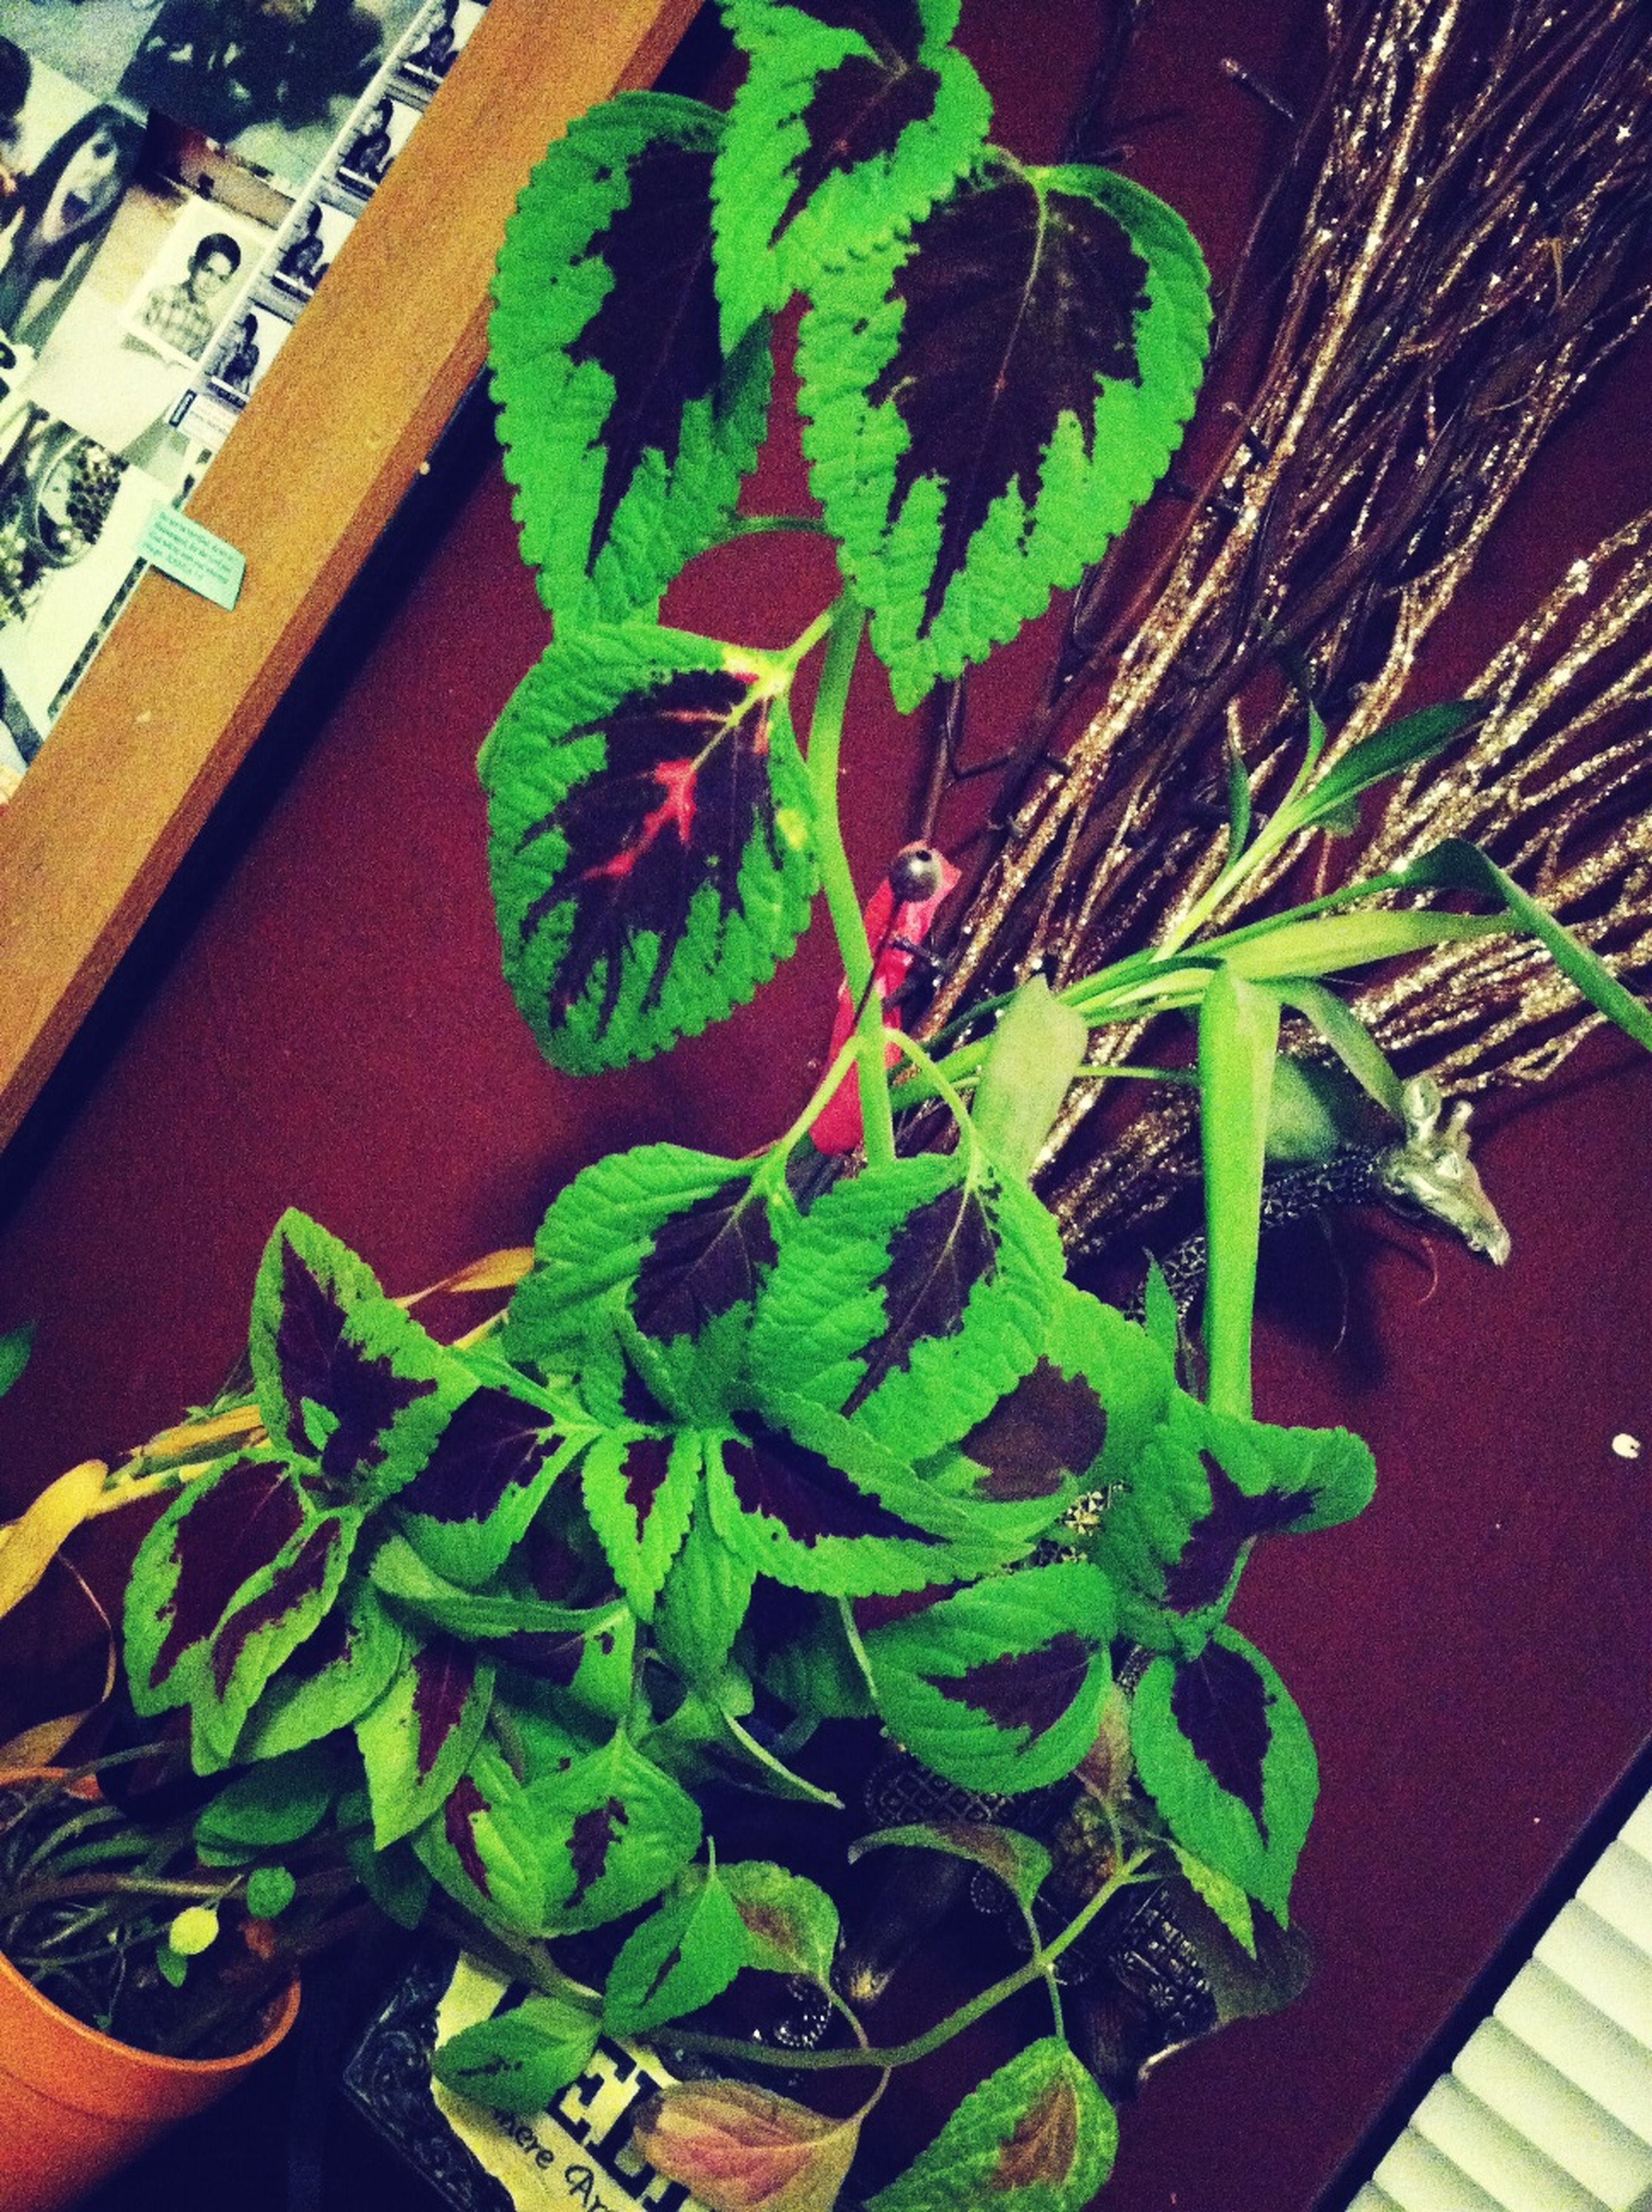 leaf, green color, potted plant, indoors, plant, growth, high angle view, freshness, close-up, green, nature, no people, table, home interior, decoration, day, growing, flower pot, front or back yard, house